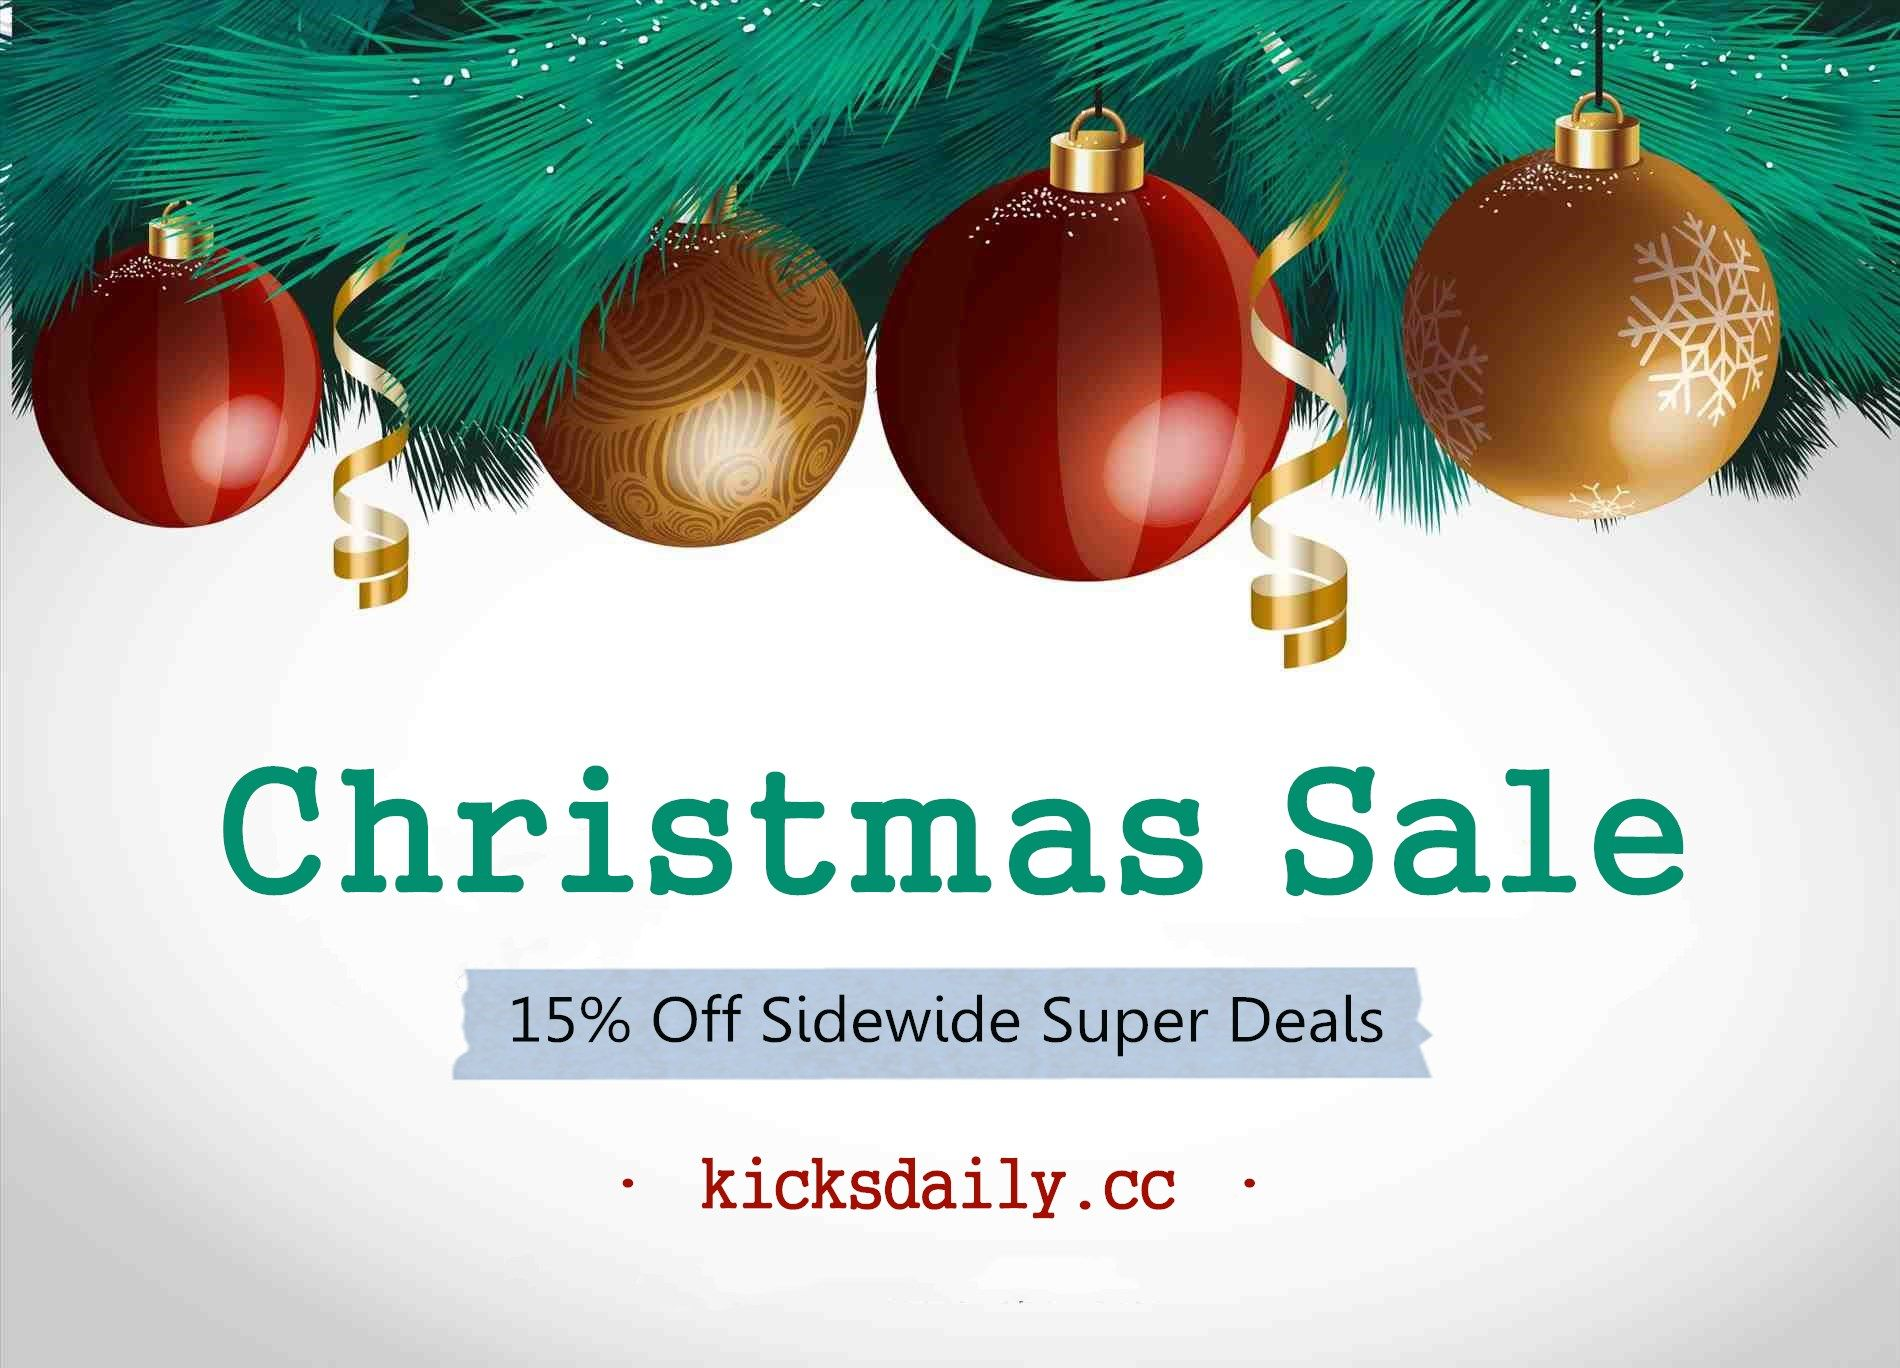 Get best Christmas gifts with good price at kicksdaily.cc | Sales ...